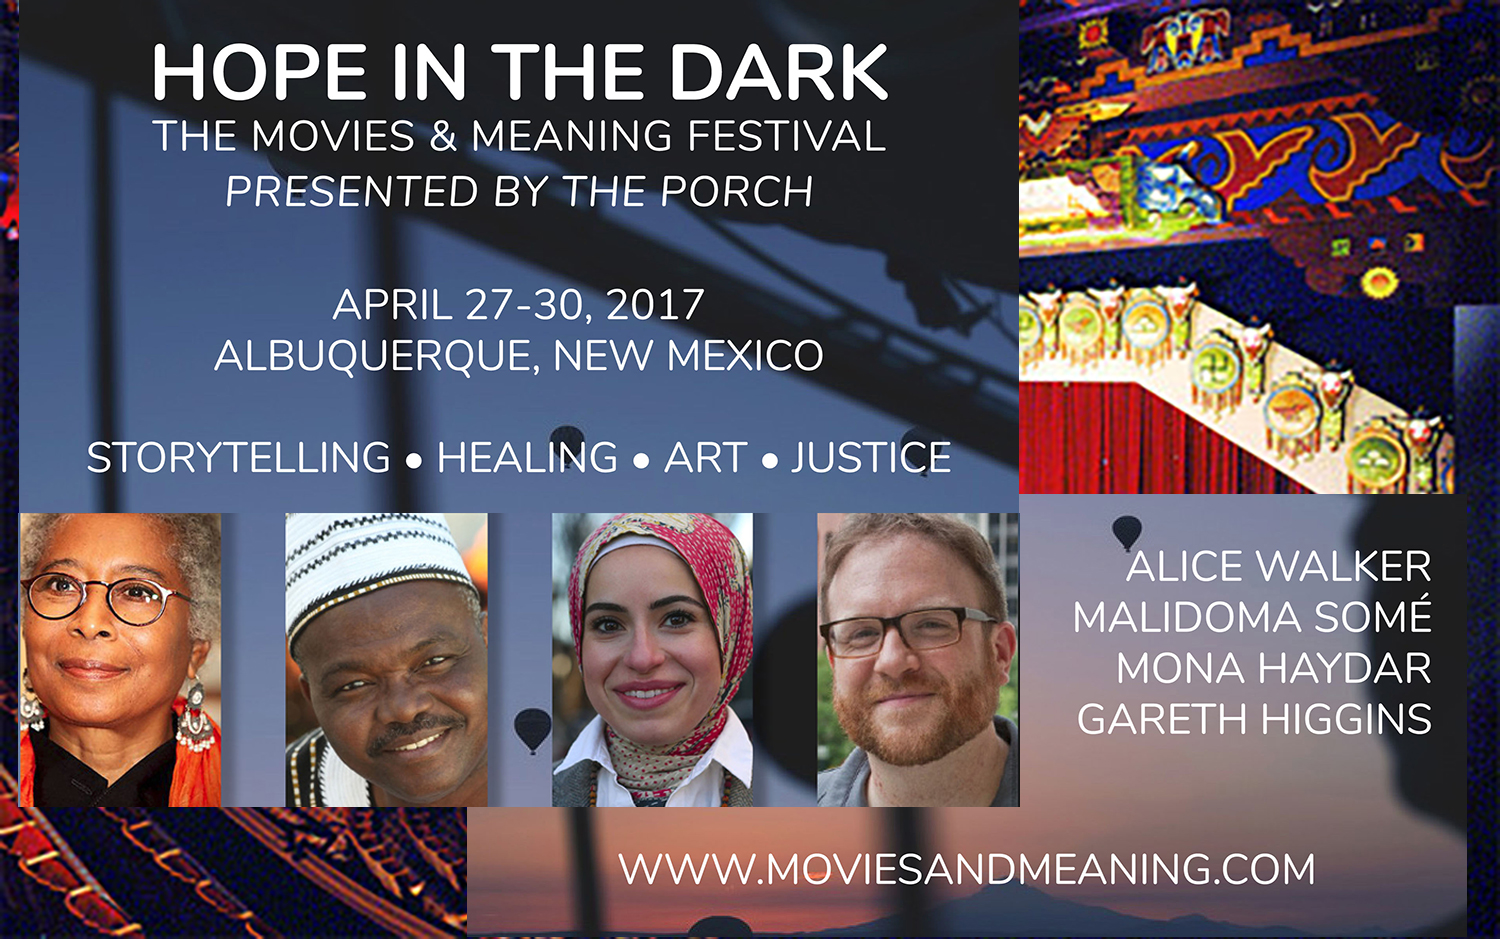 Movies Meaning Festival April 27-30 Announcement